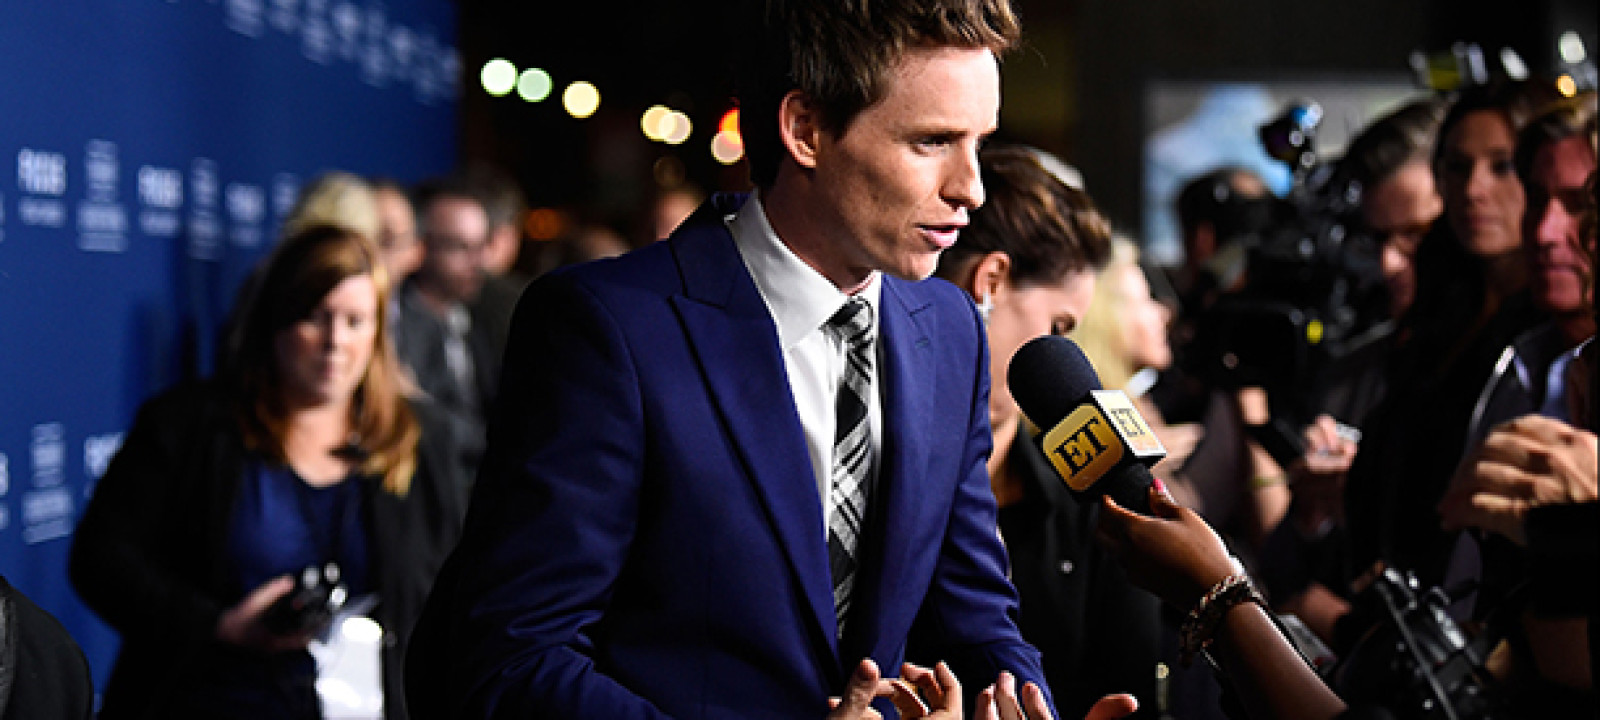 """Premiere Of Focus Features' """"The Theory Of Everything"""" – Arrivals"""